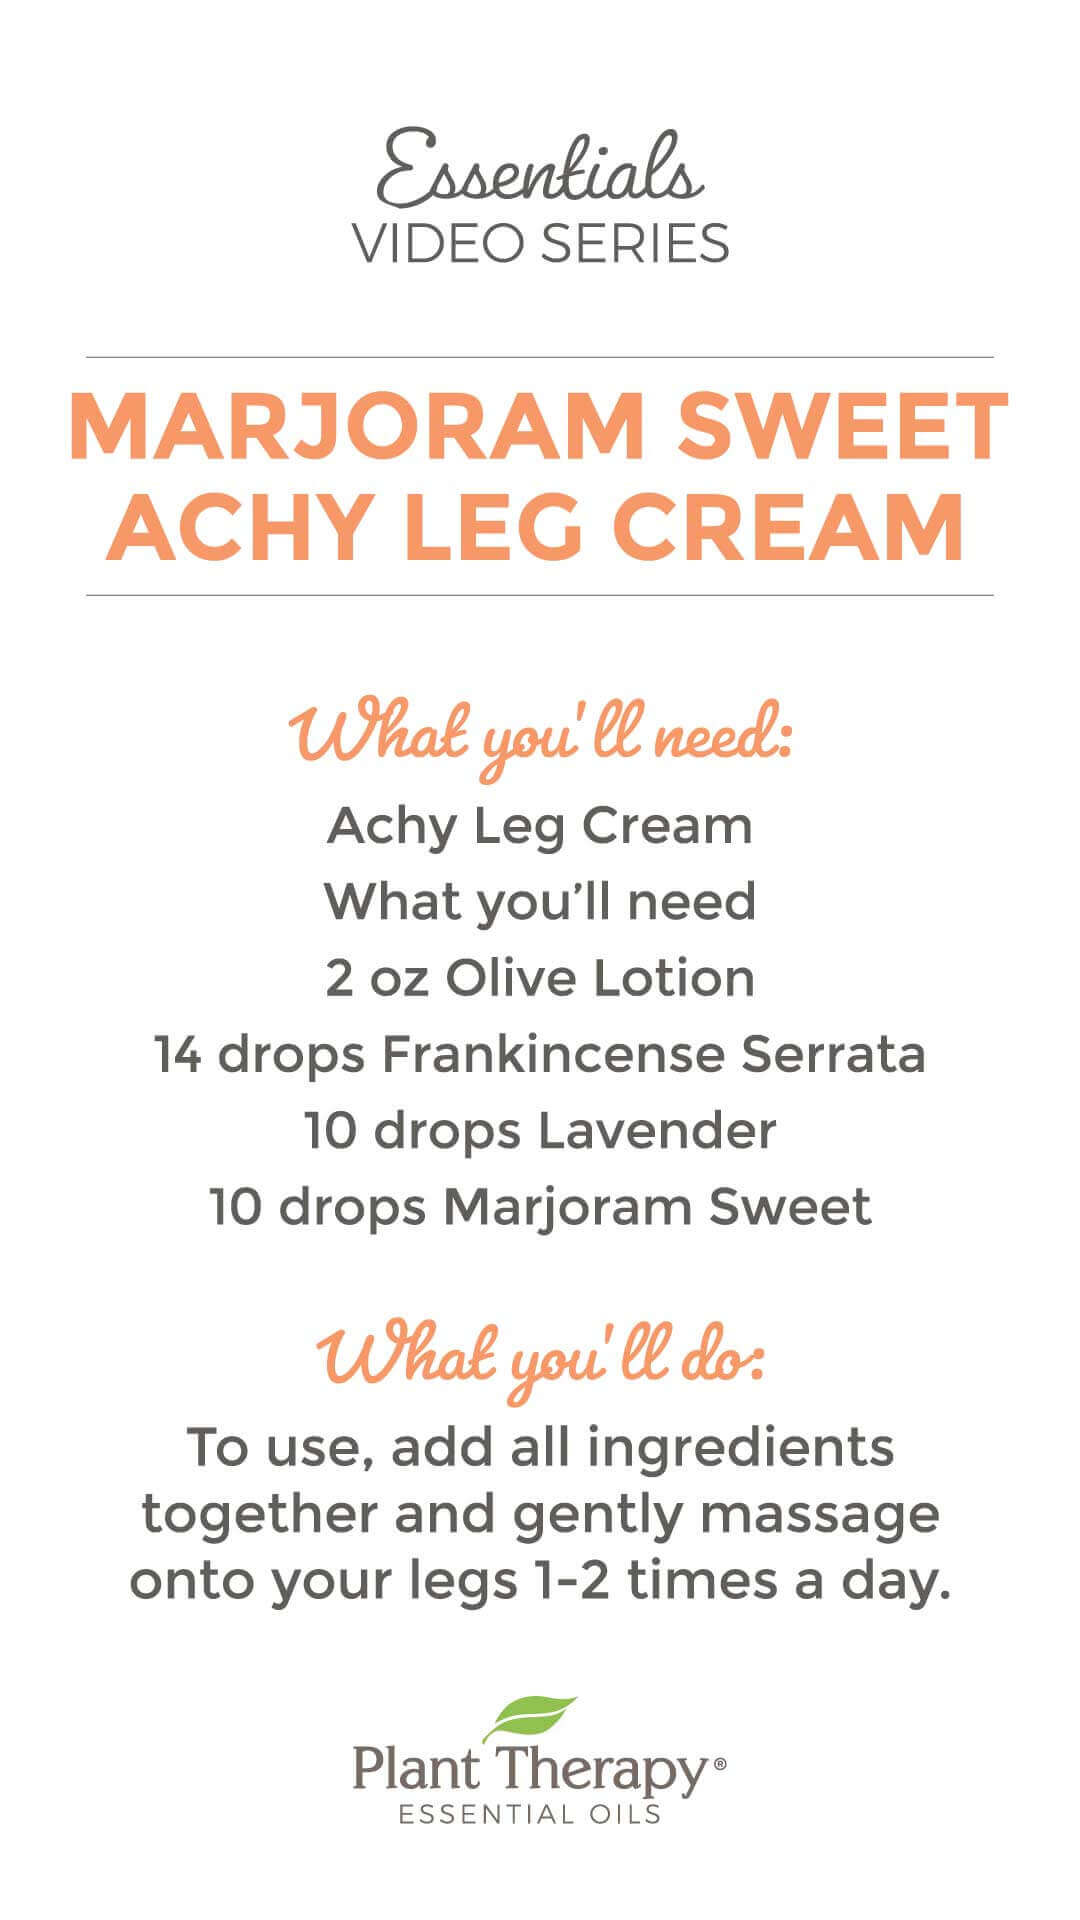 Essentials Video: Marjoram Sweet Achy Leg Cream